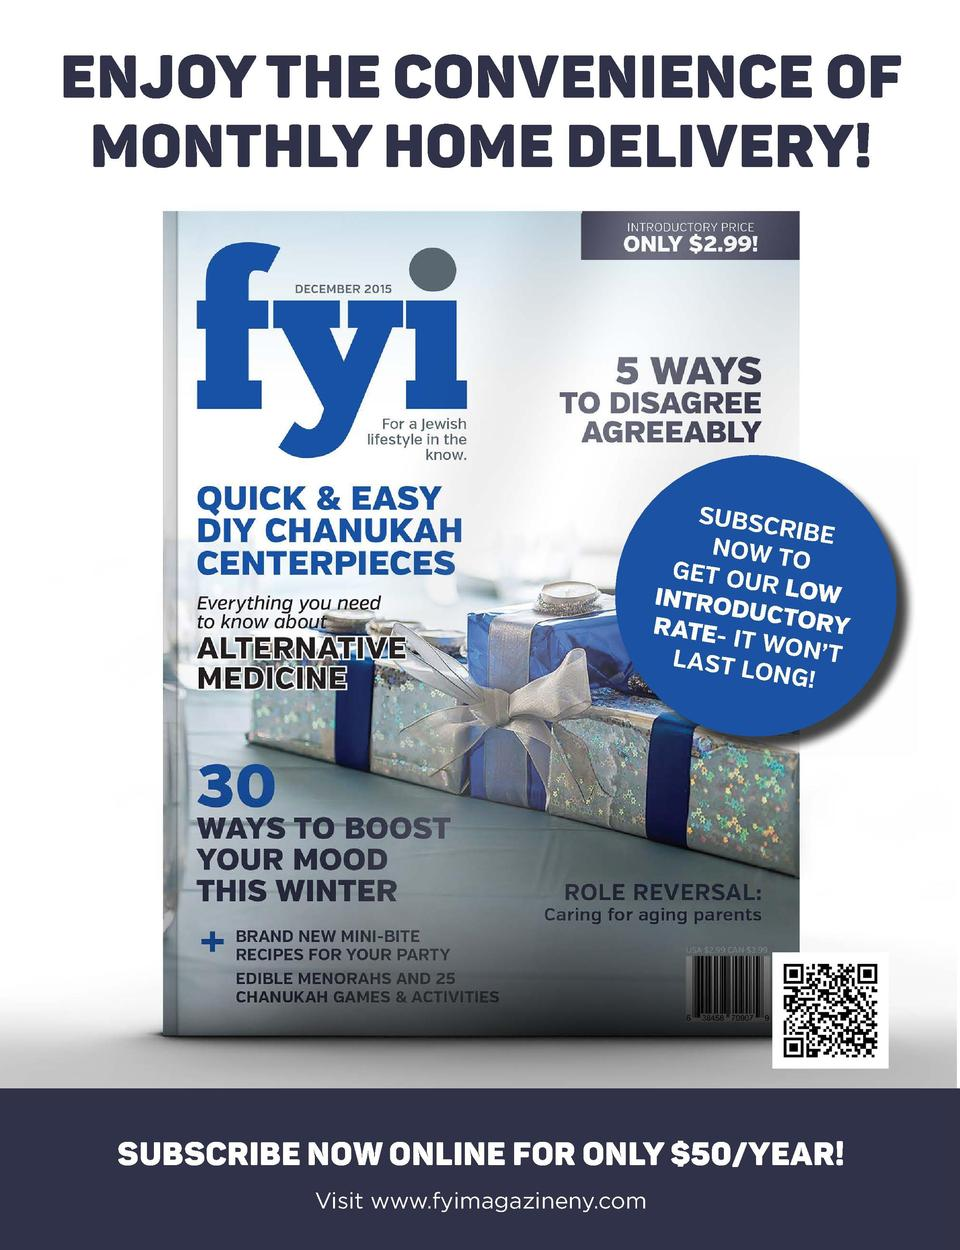 ENJOY THE CONVENIENCE OF MONTHLY HOME DELIVERY   editor   s note  I  believe I was about 10 years old when I received my f...